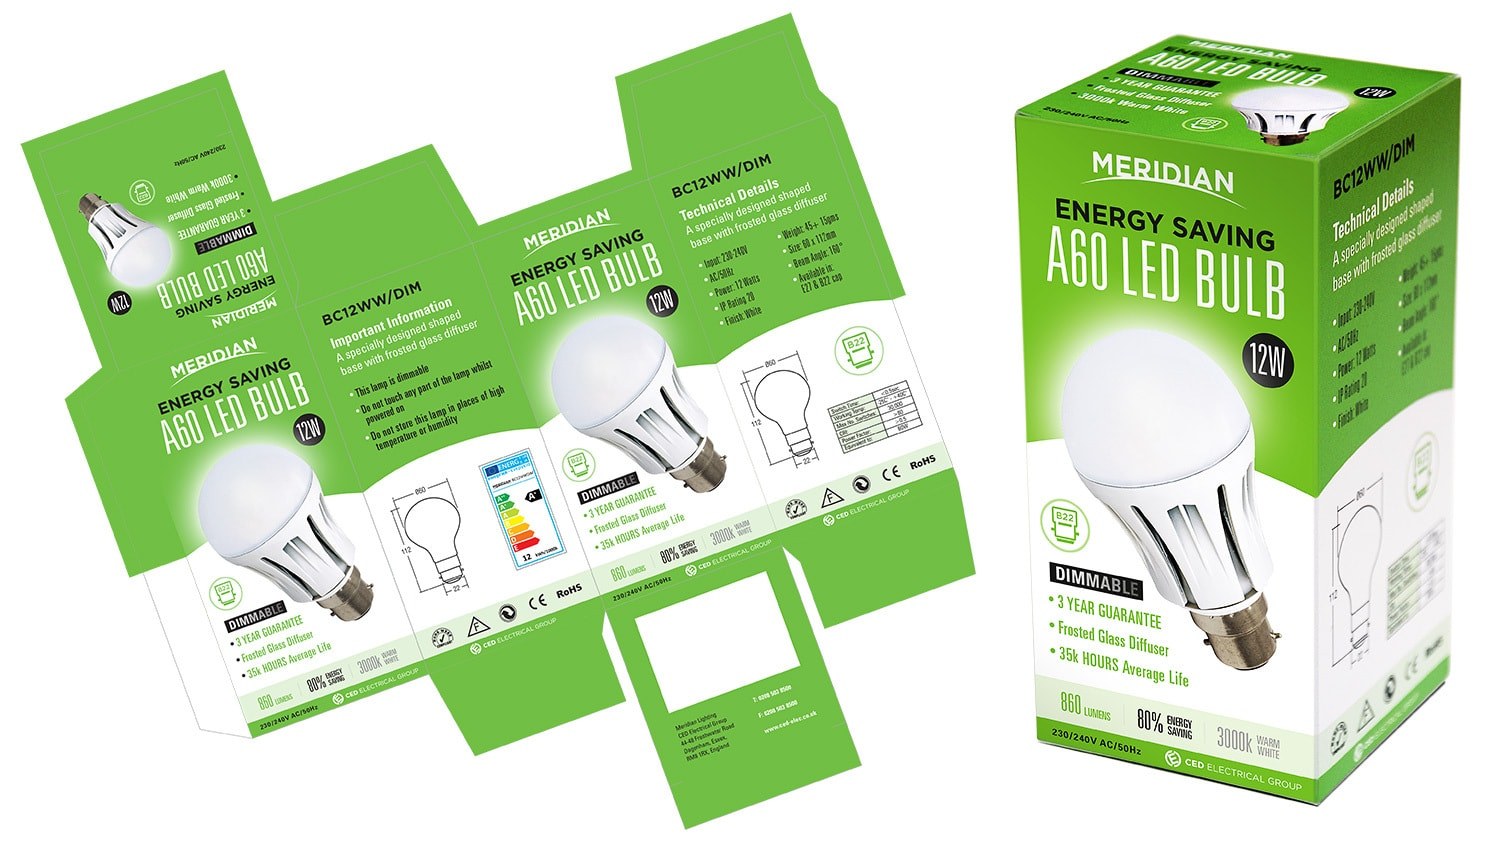 Merdian Lighting A60 LED Bulb packaging design net artwork alongside 3D product carton